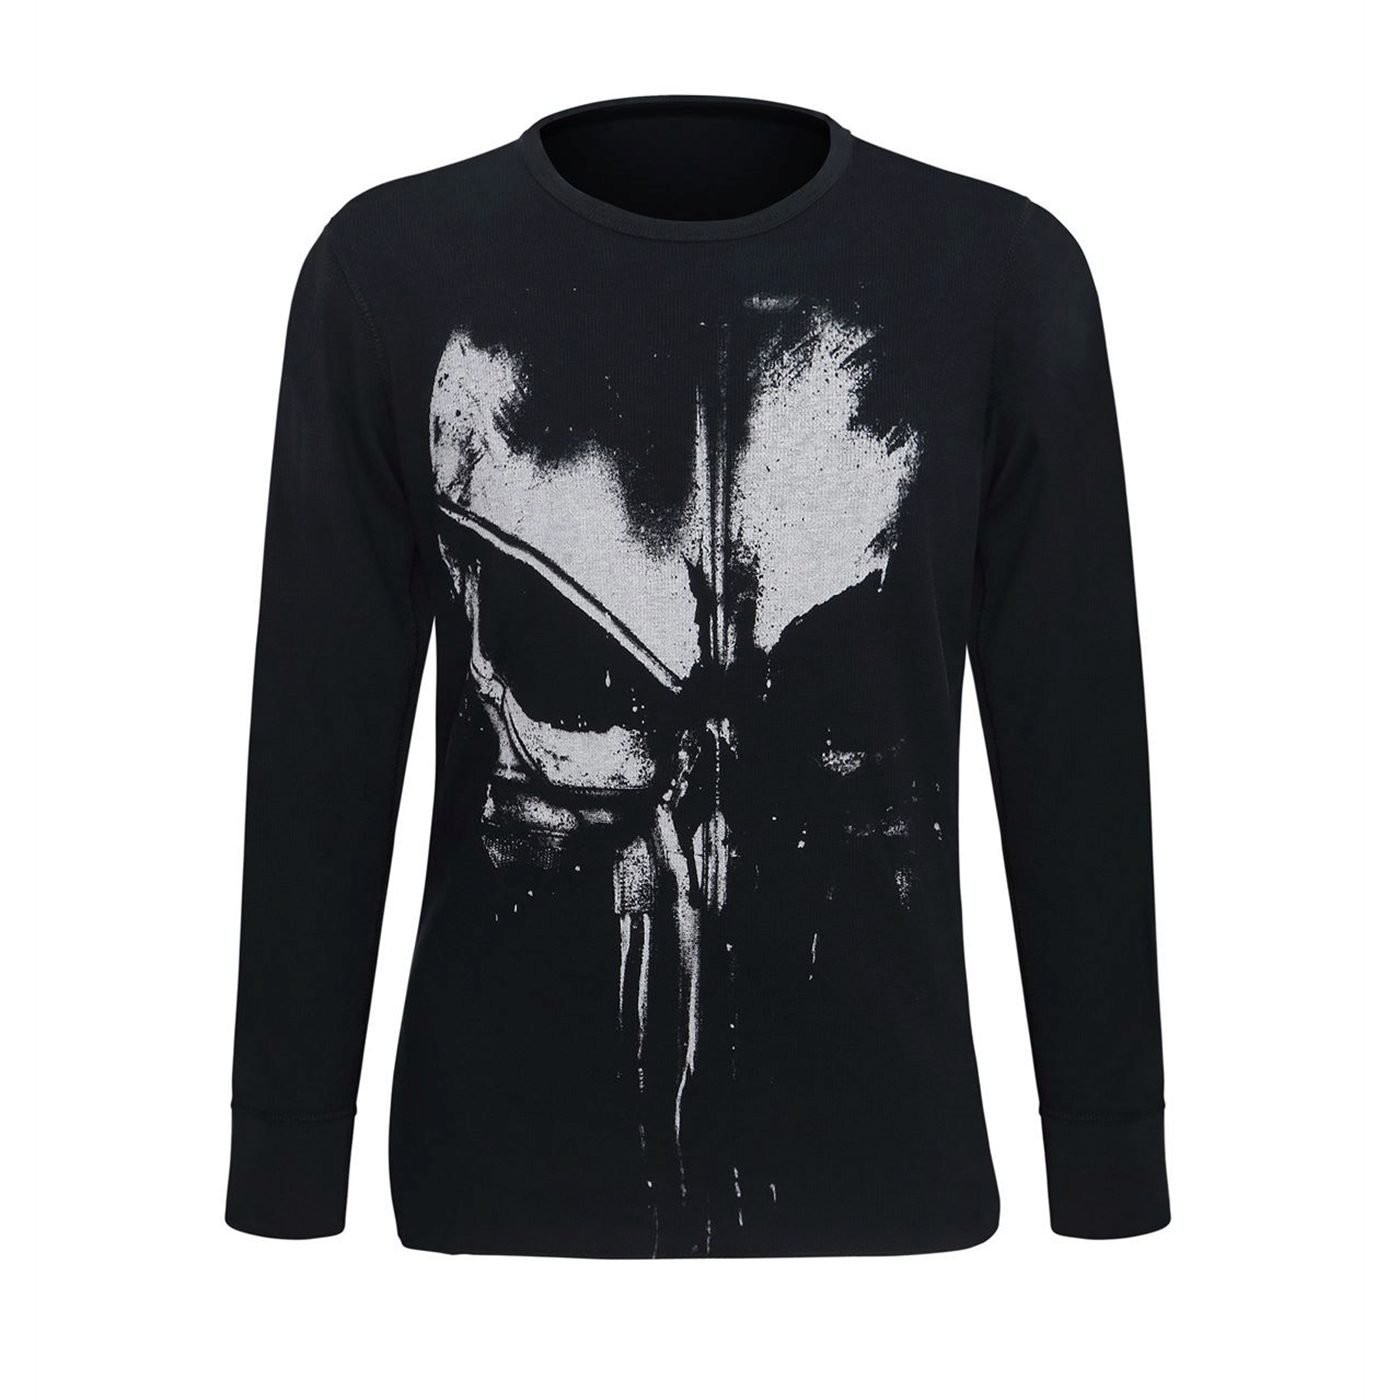 The punisher langärmeliges T-Shirt für Männer